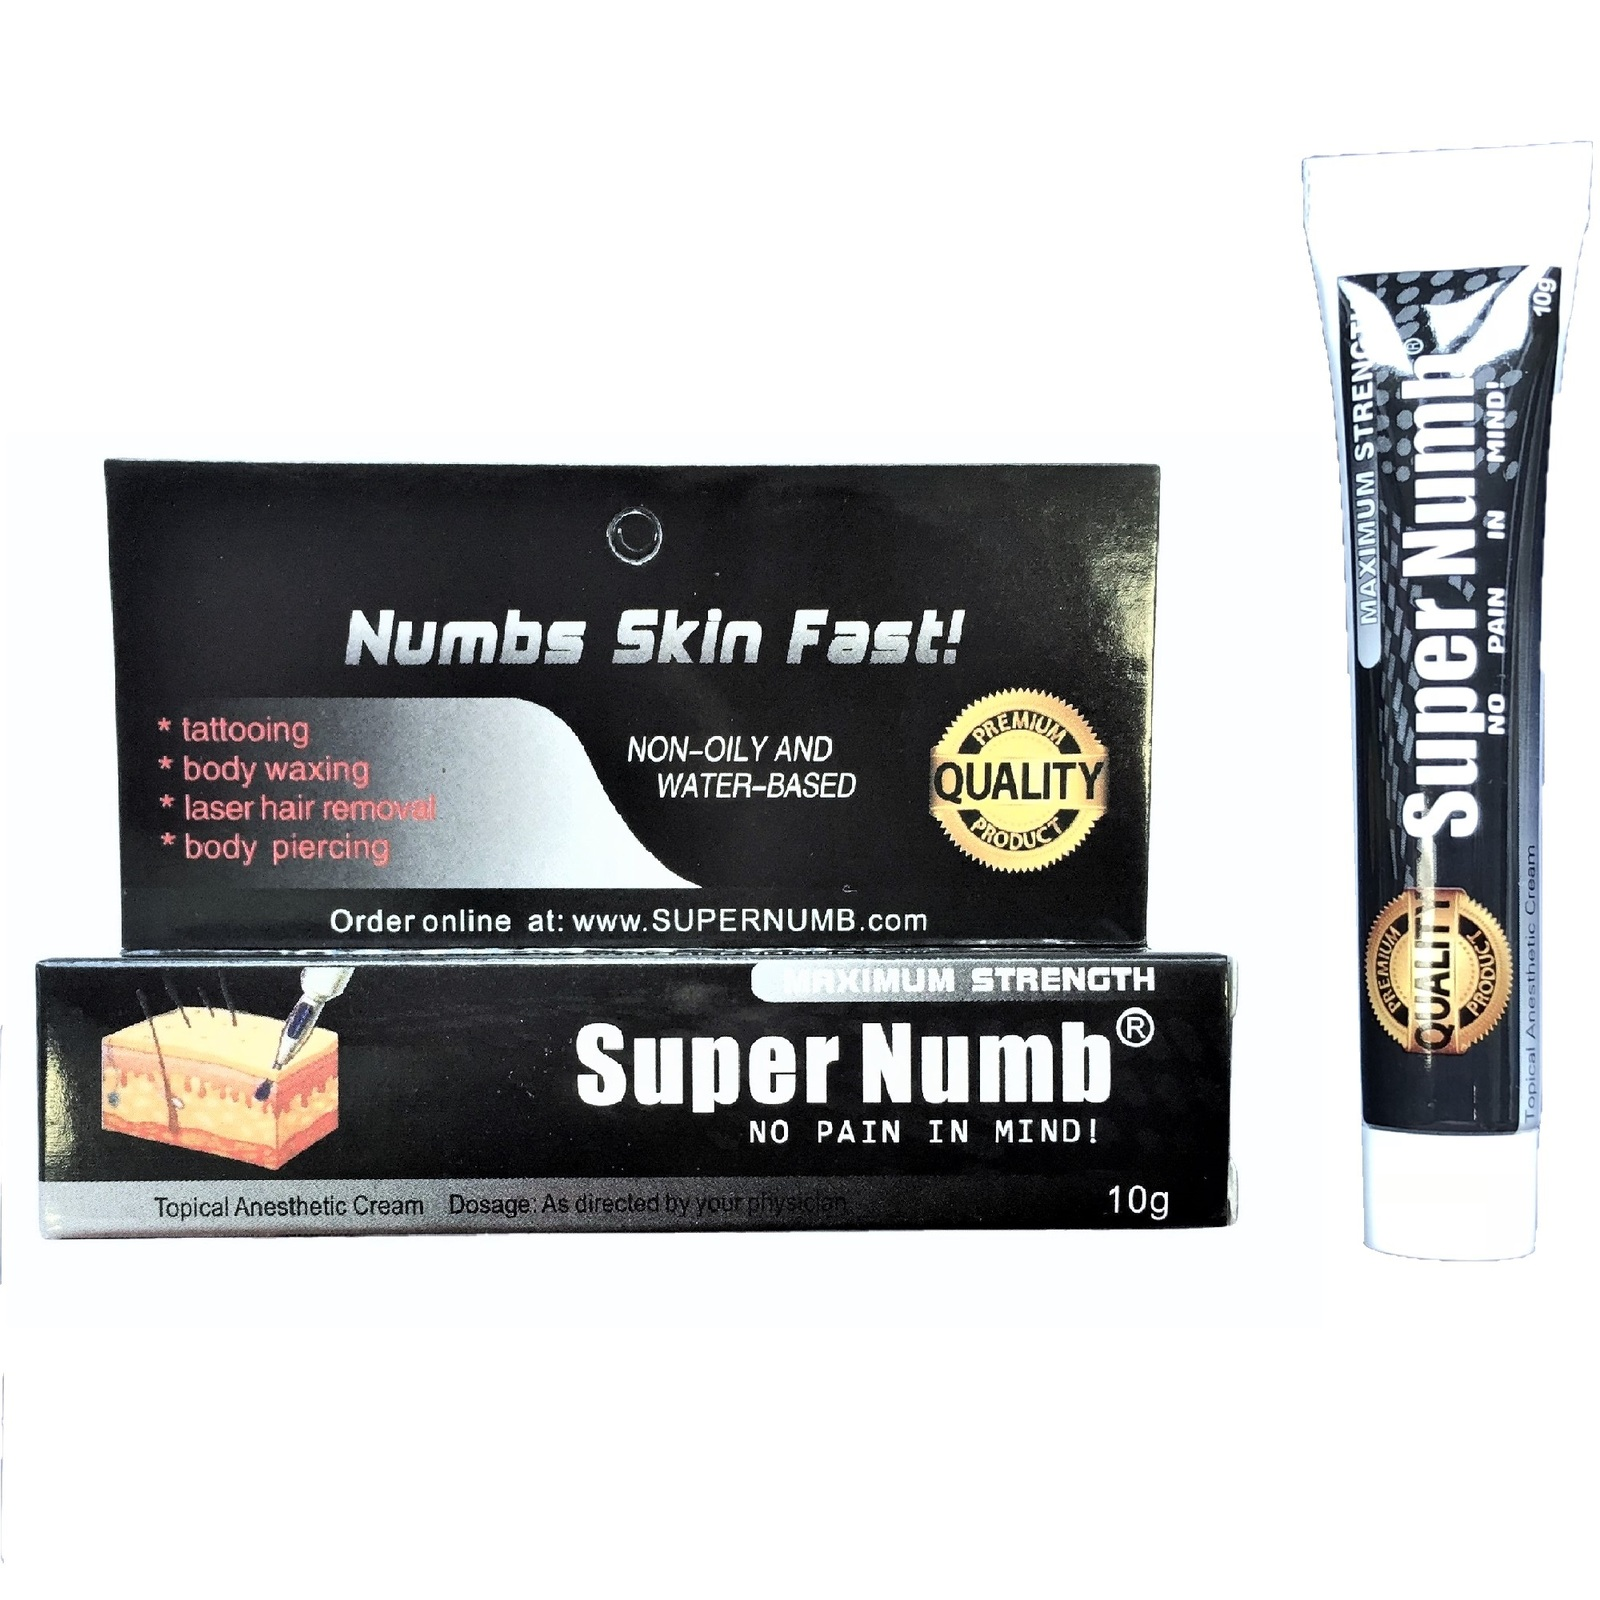 Super Numb Cream: 7 customer reviews and 7 listings